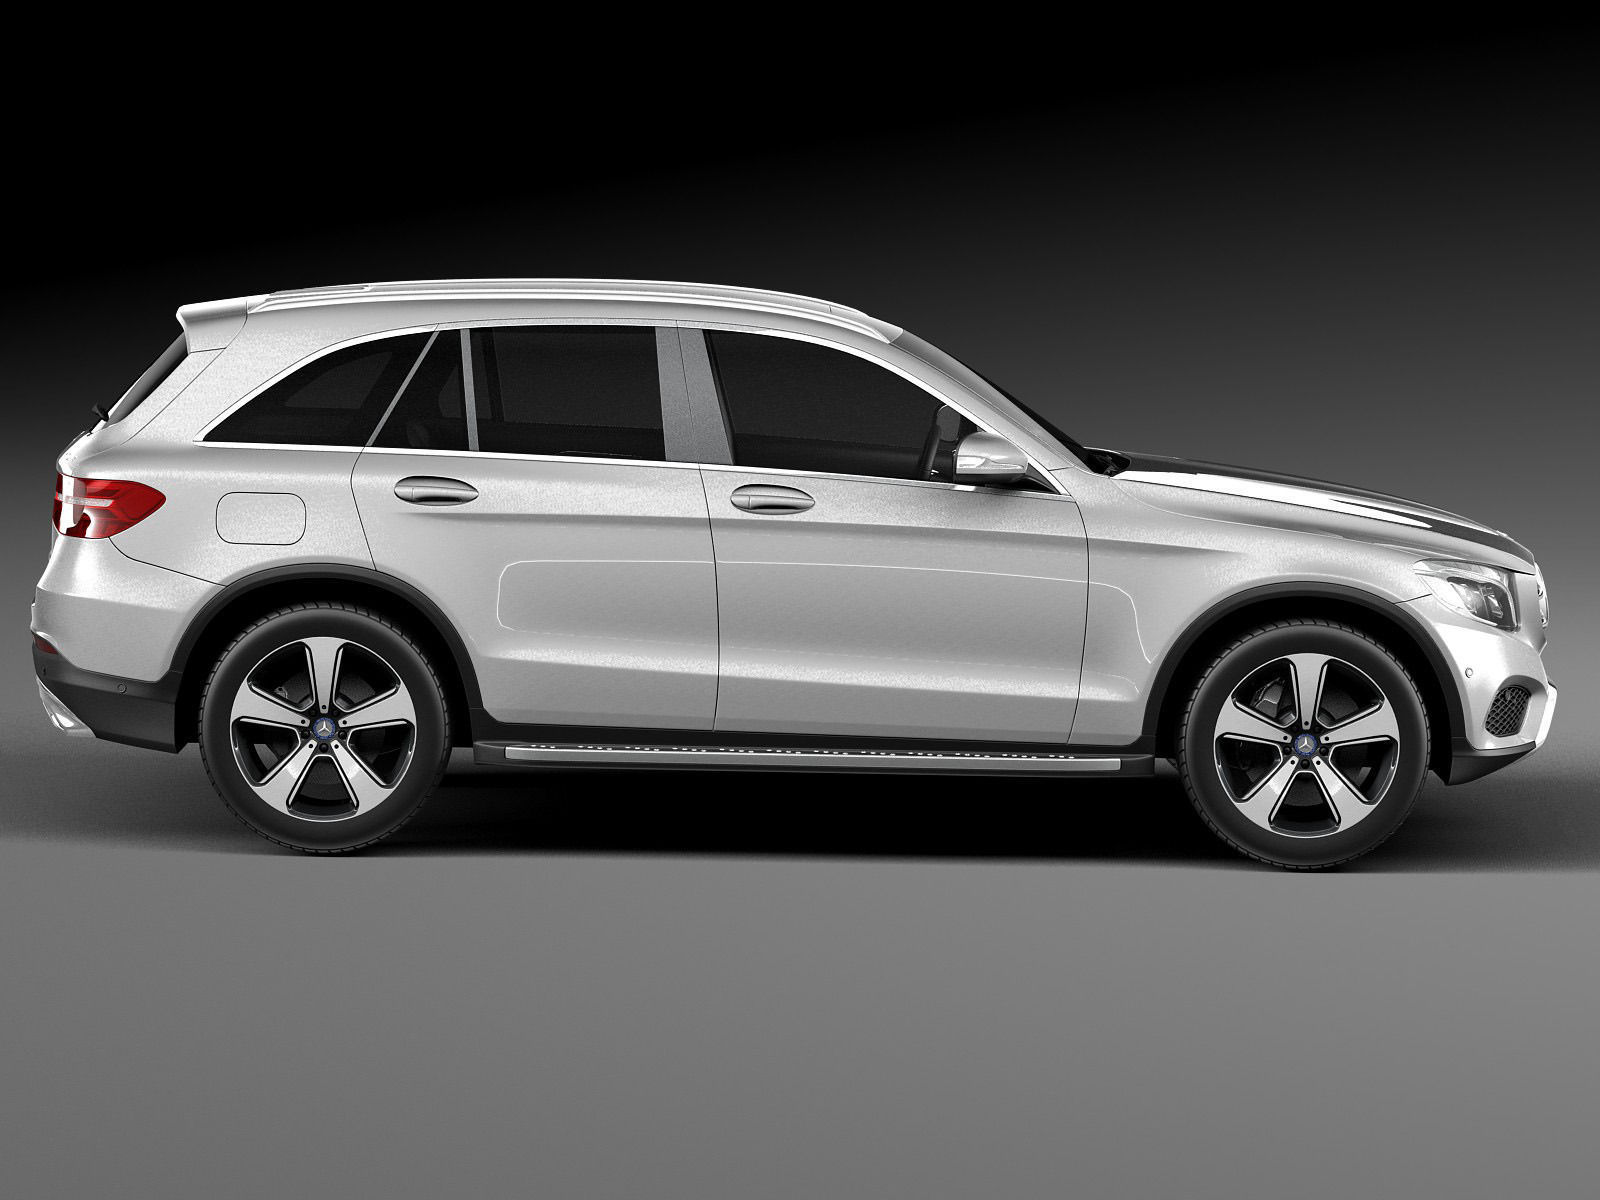 Mercedes Benz Glc 2016 3d Model Max Obj 3ds Fbx C4d